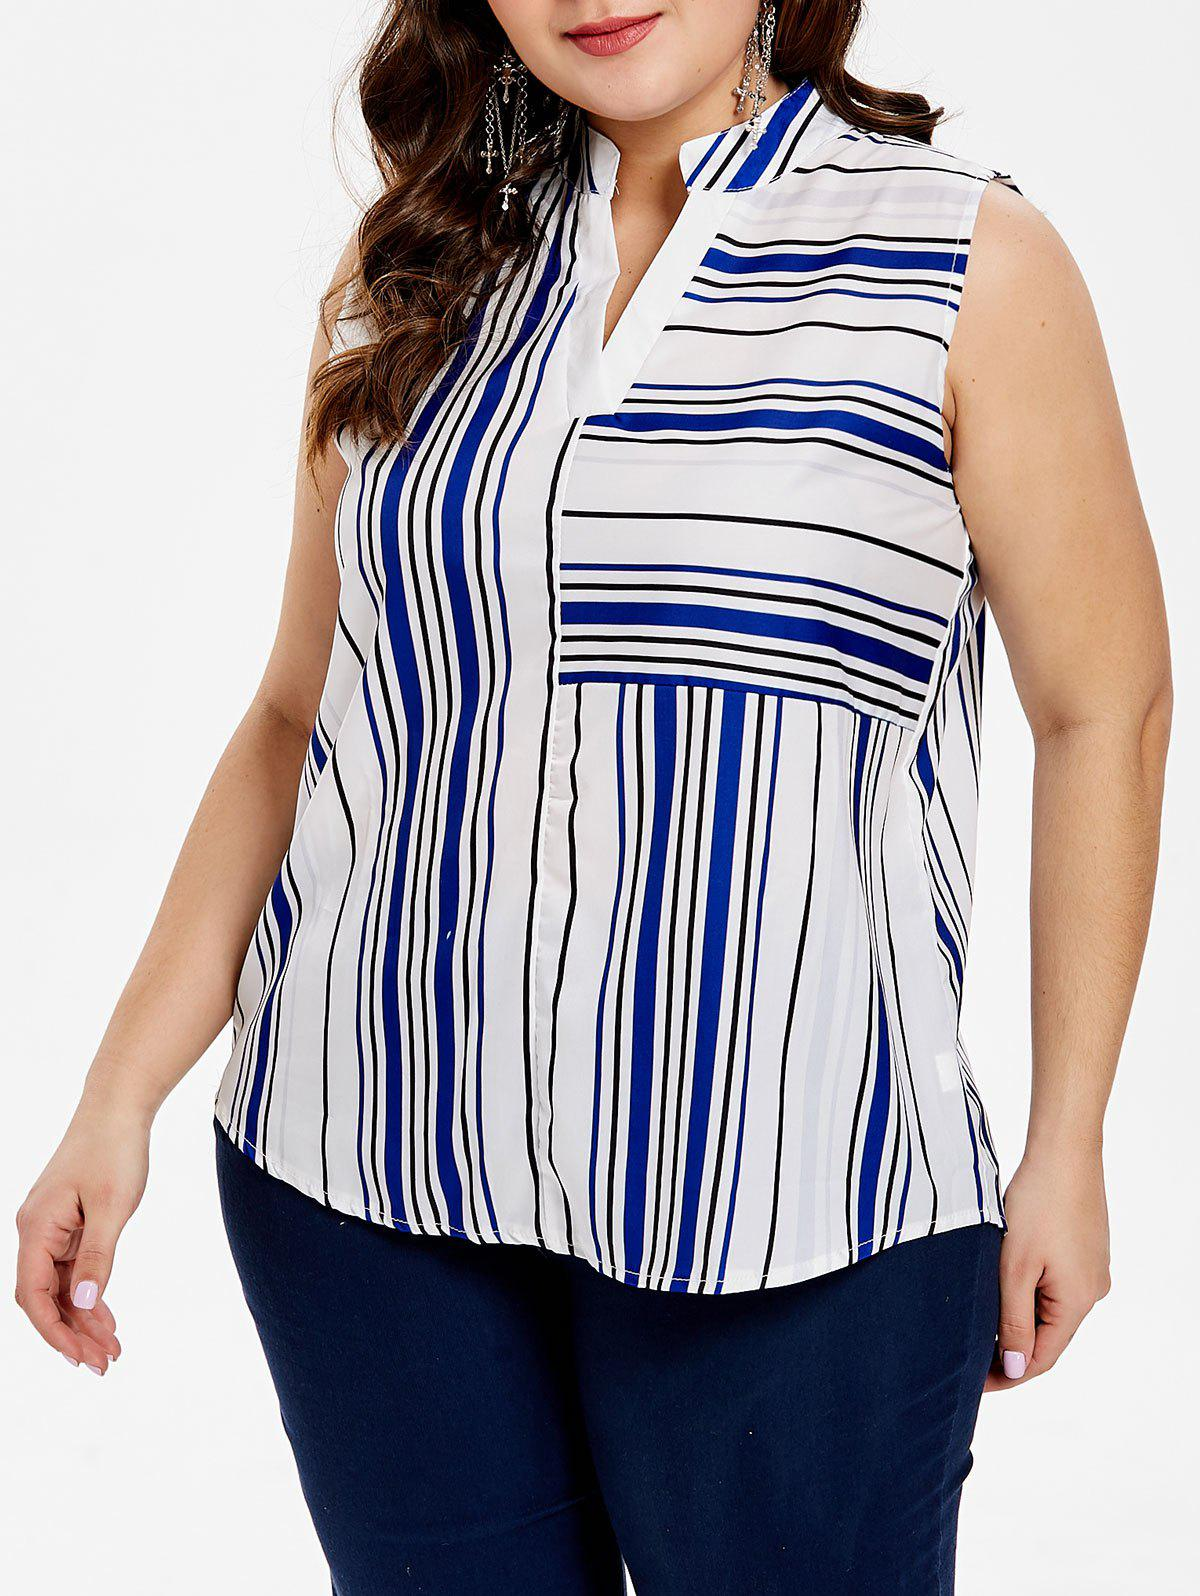 1efc5cddfe2 2019 Plus Size Striped Sleeveless High Low Blouse